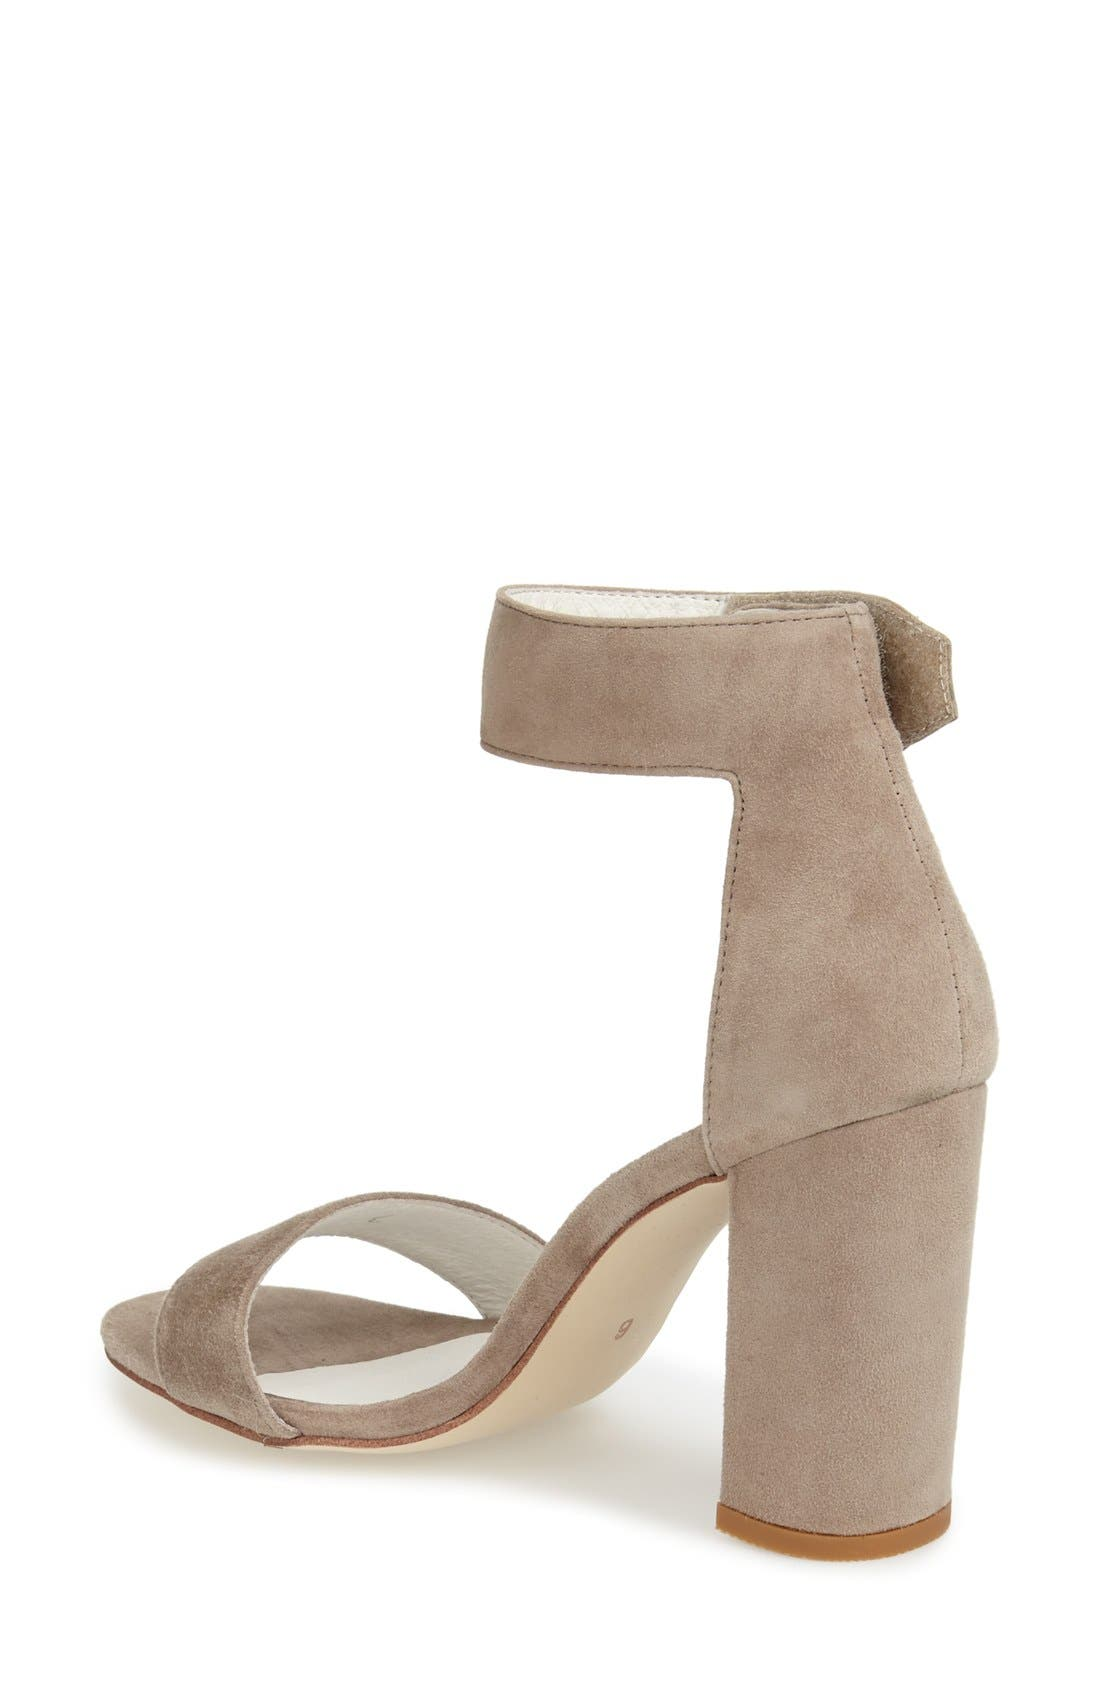 'Lindsay' Ankle Strap Sandal,                             Alternate thumbnail 2, color,                             Taupe Suede